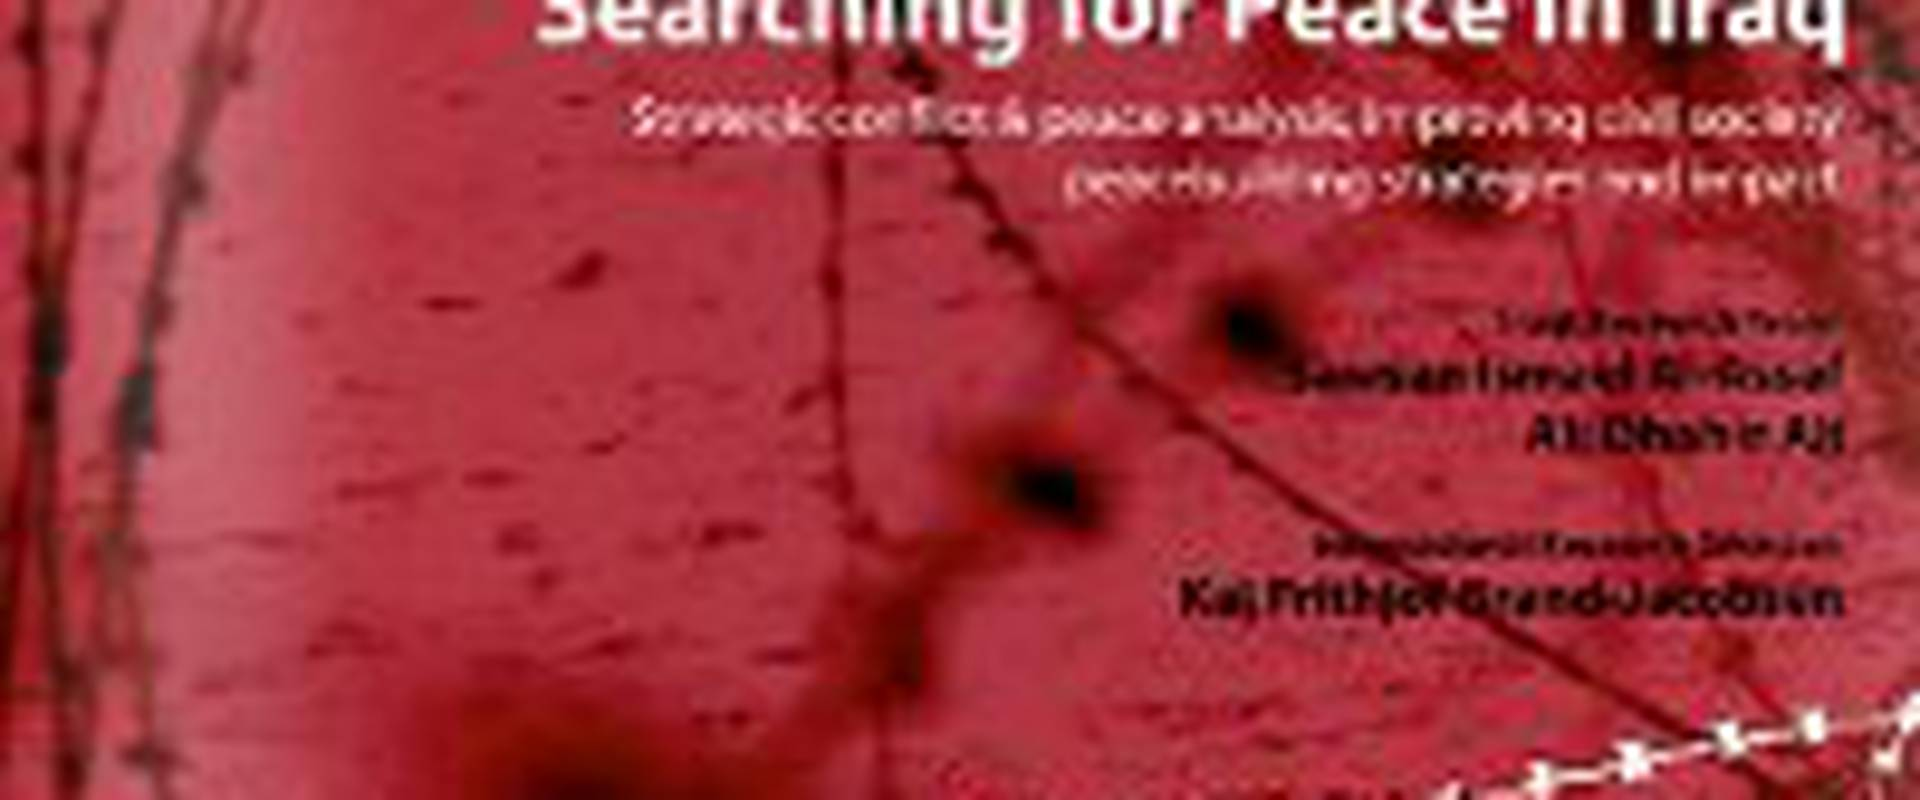 searching for peace Start studying unit 8:the search for peace learn vocabulary, terms, and more with flashcards, games, and other study tools.